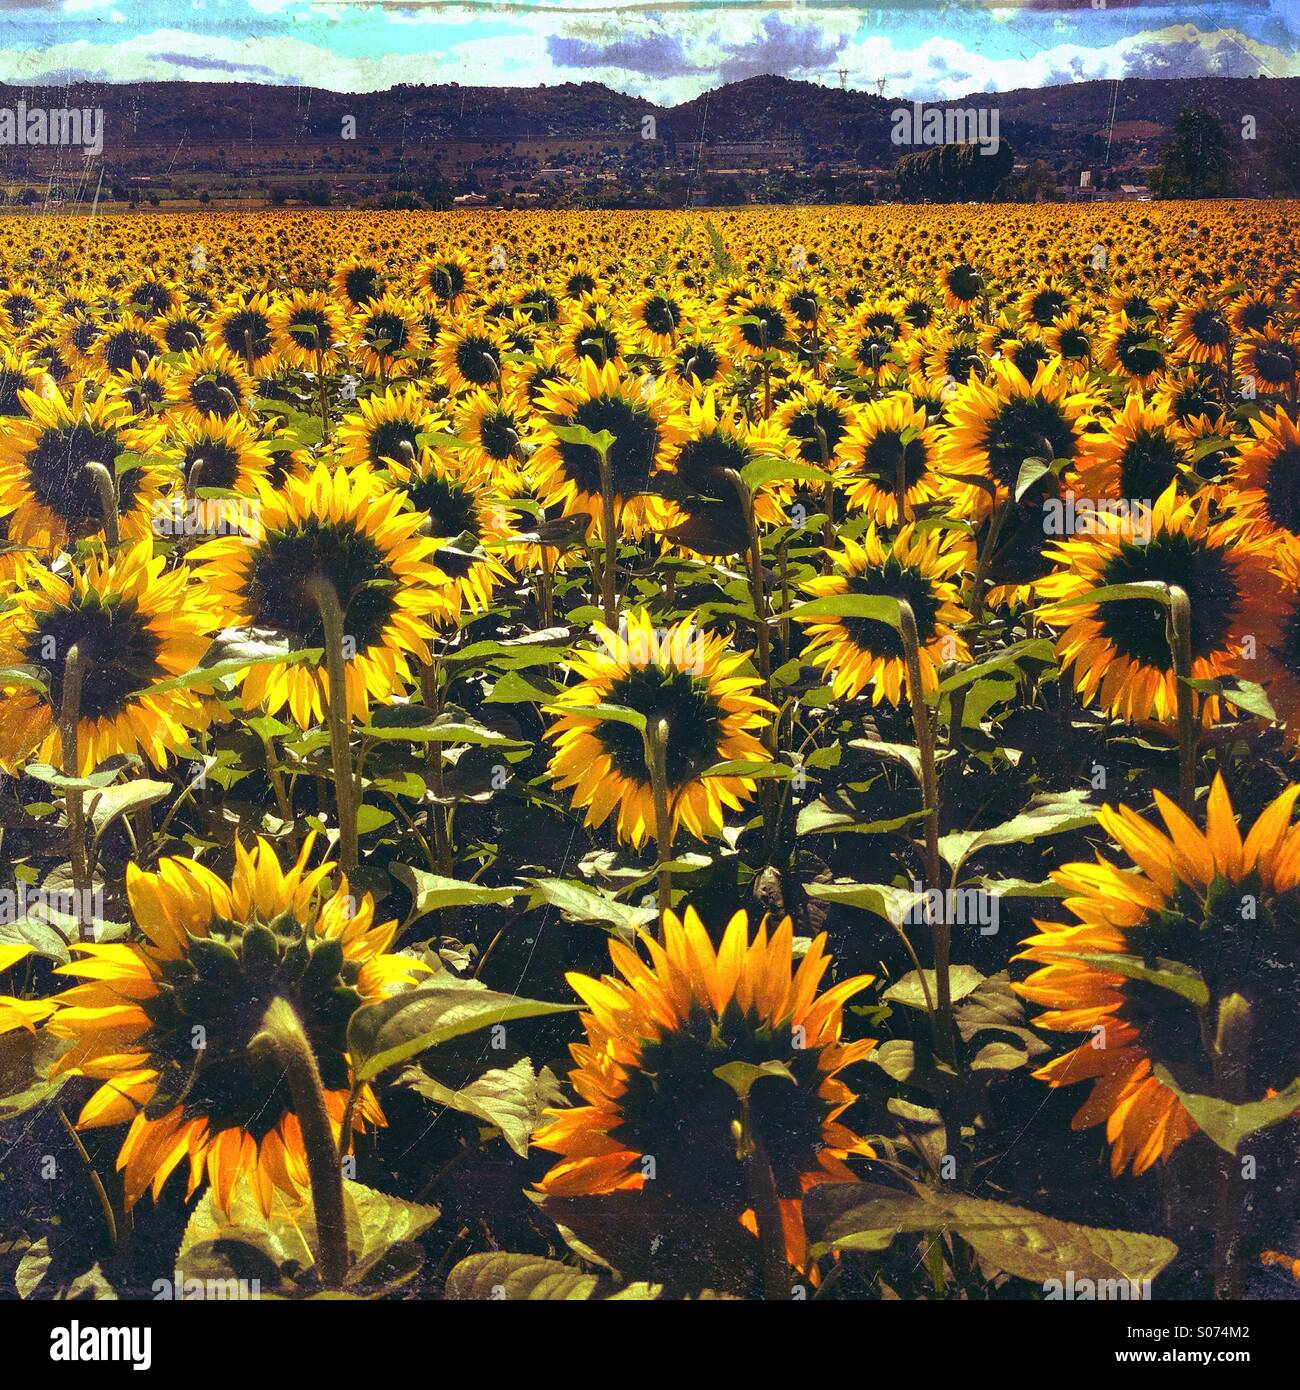 Field of giant yellow sunflowers in bloom in summer, Oraison, Alpes-de-Haute-Provence, Provence-Alpes-Côte - Stock Image